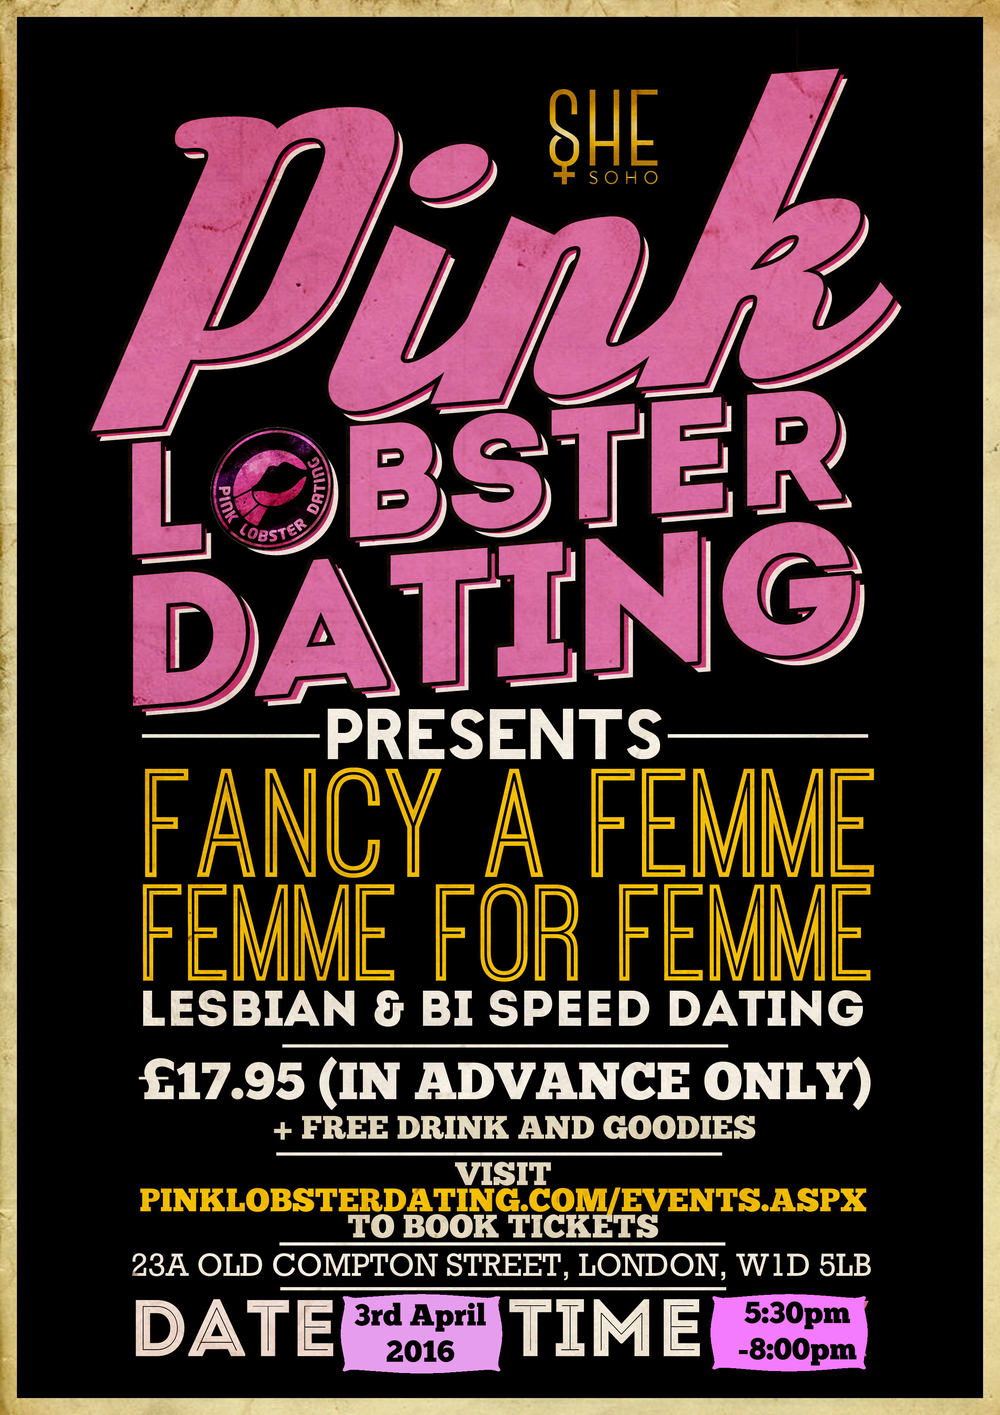 Fancy a Femme Lesbian Speed Dating at SHE Soho, London